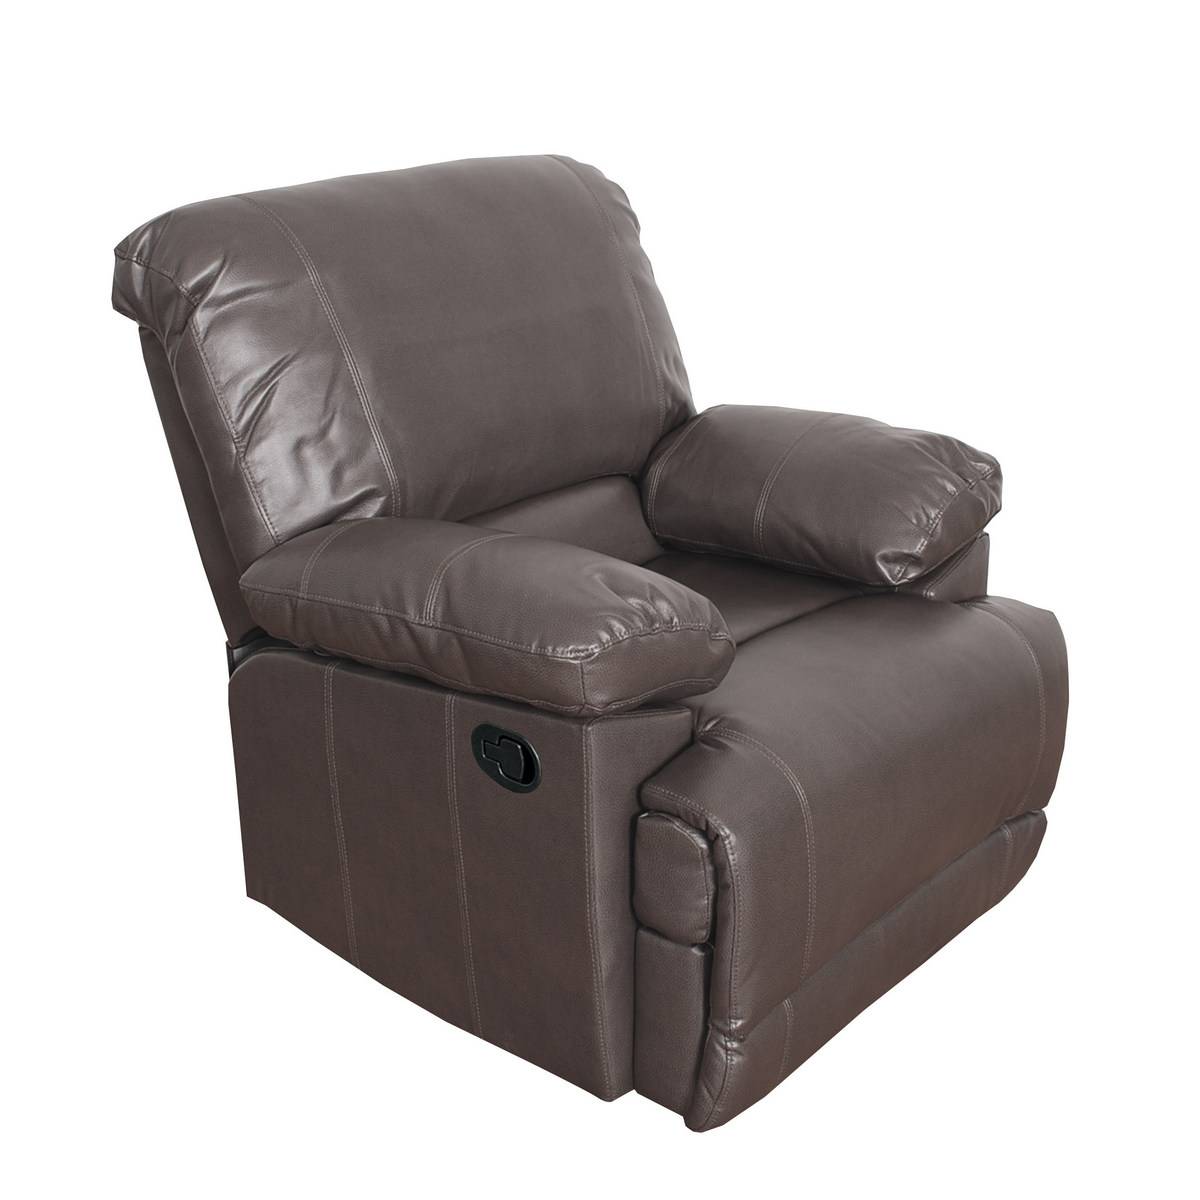 Corliving R Lea Brownish Grey Bonded Leather Reclining Chair